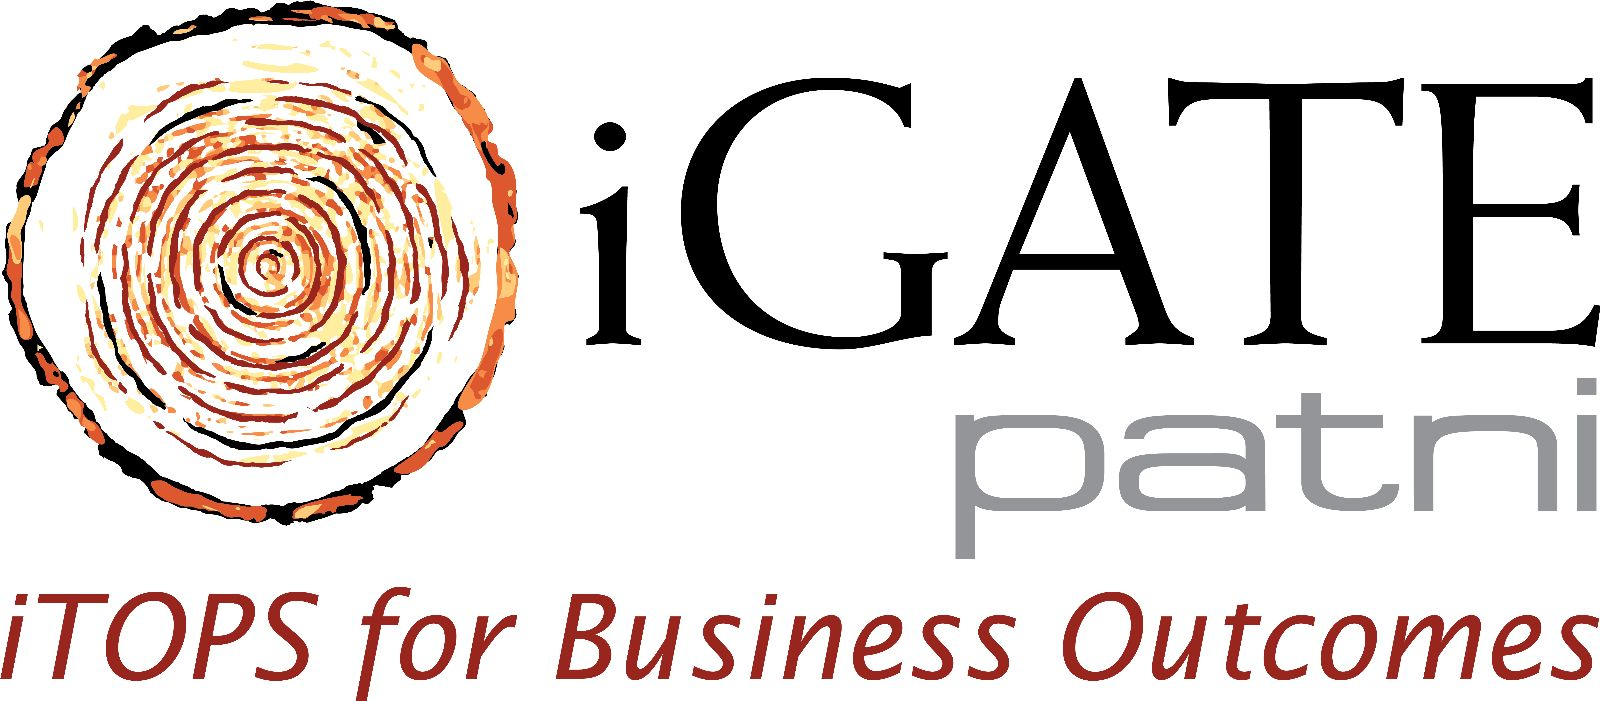 IAOP - The 2012 Outsourcing World Summit | Sponsors & Exhibitors